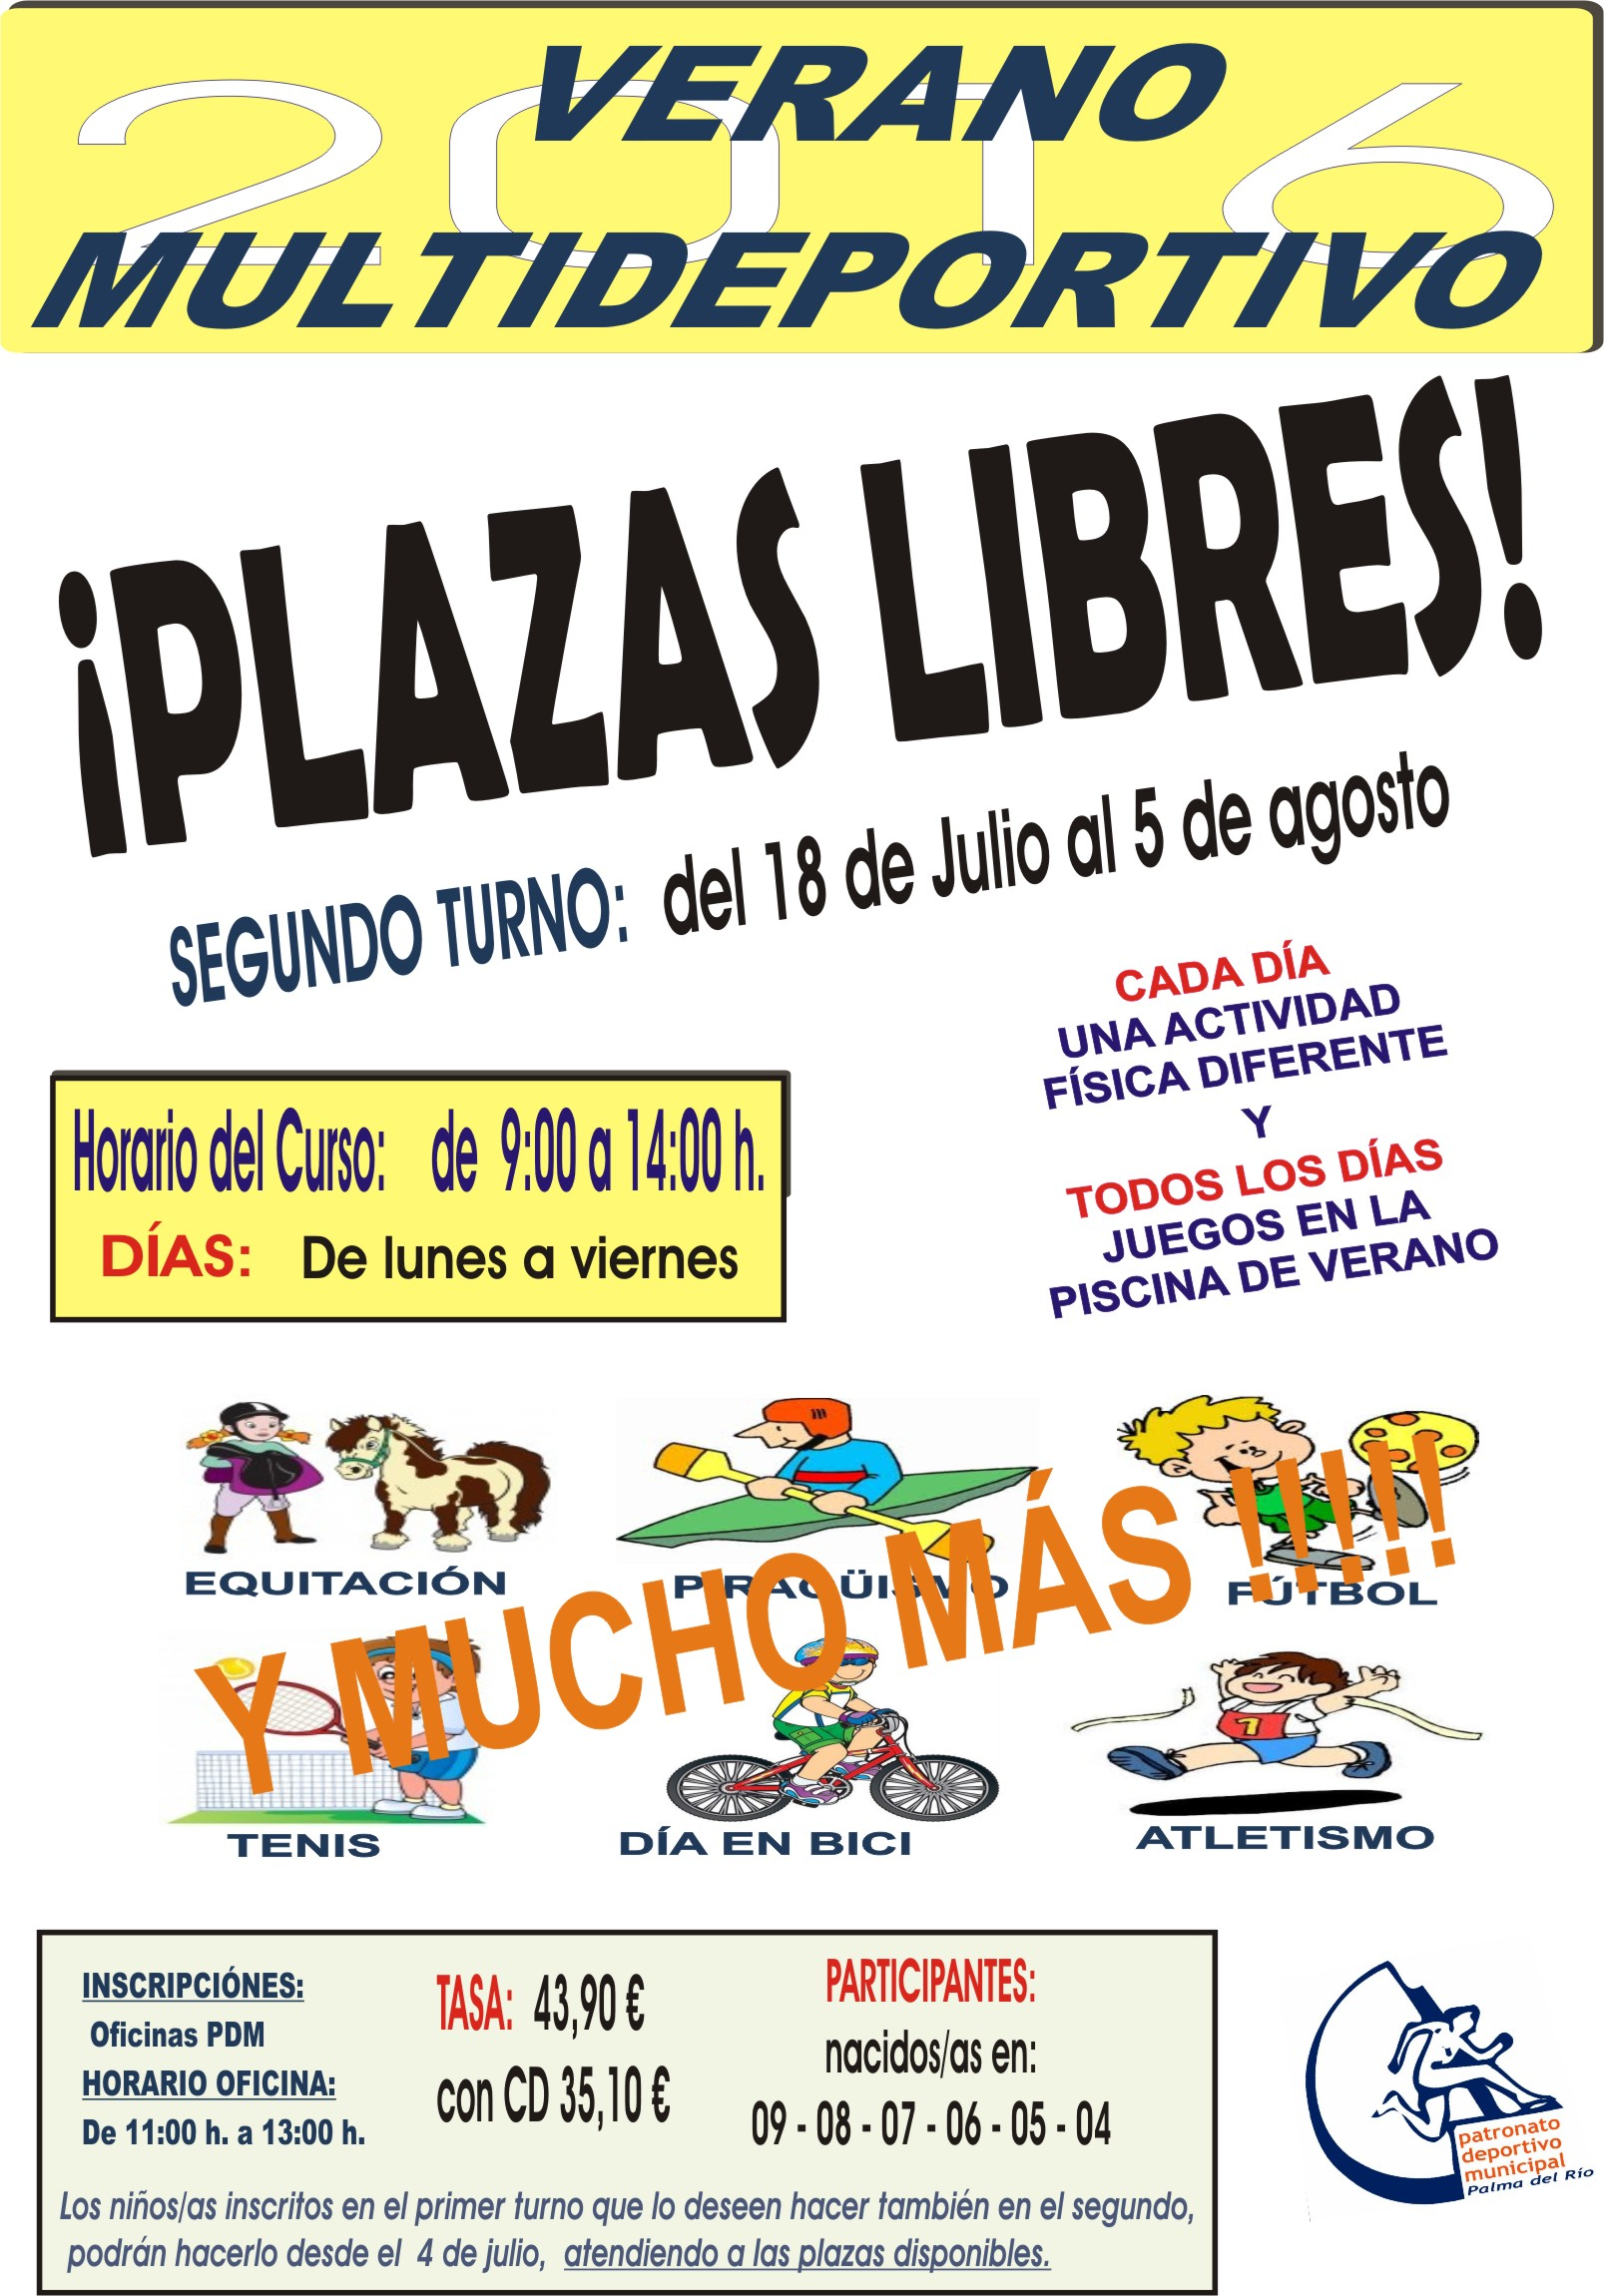 https://www.palmadelrio.es/sites/default/files/multideporte2016plazaslibre.jpg